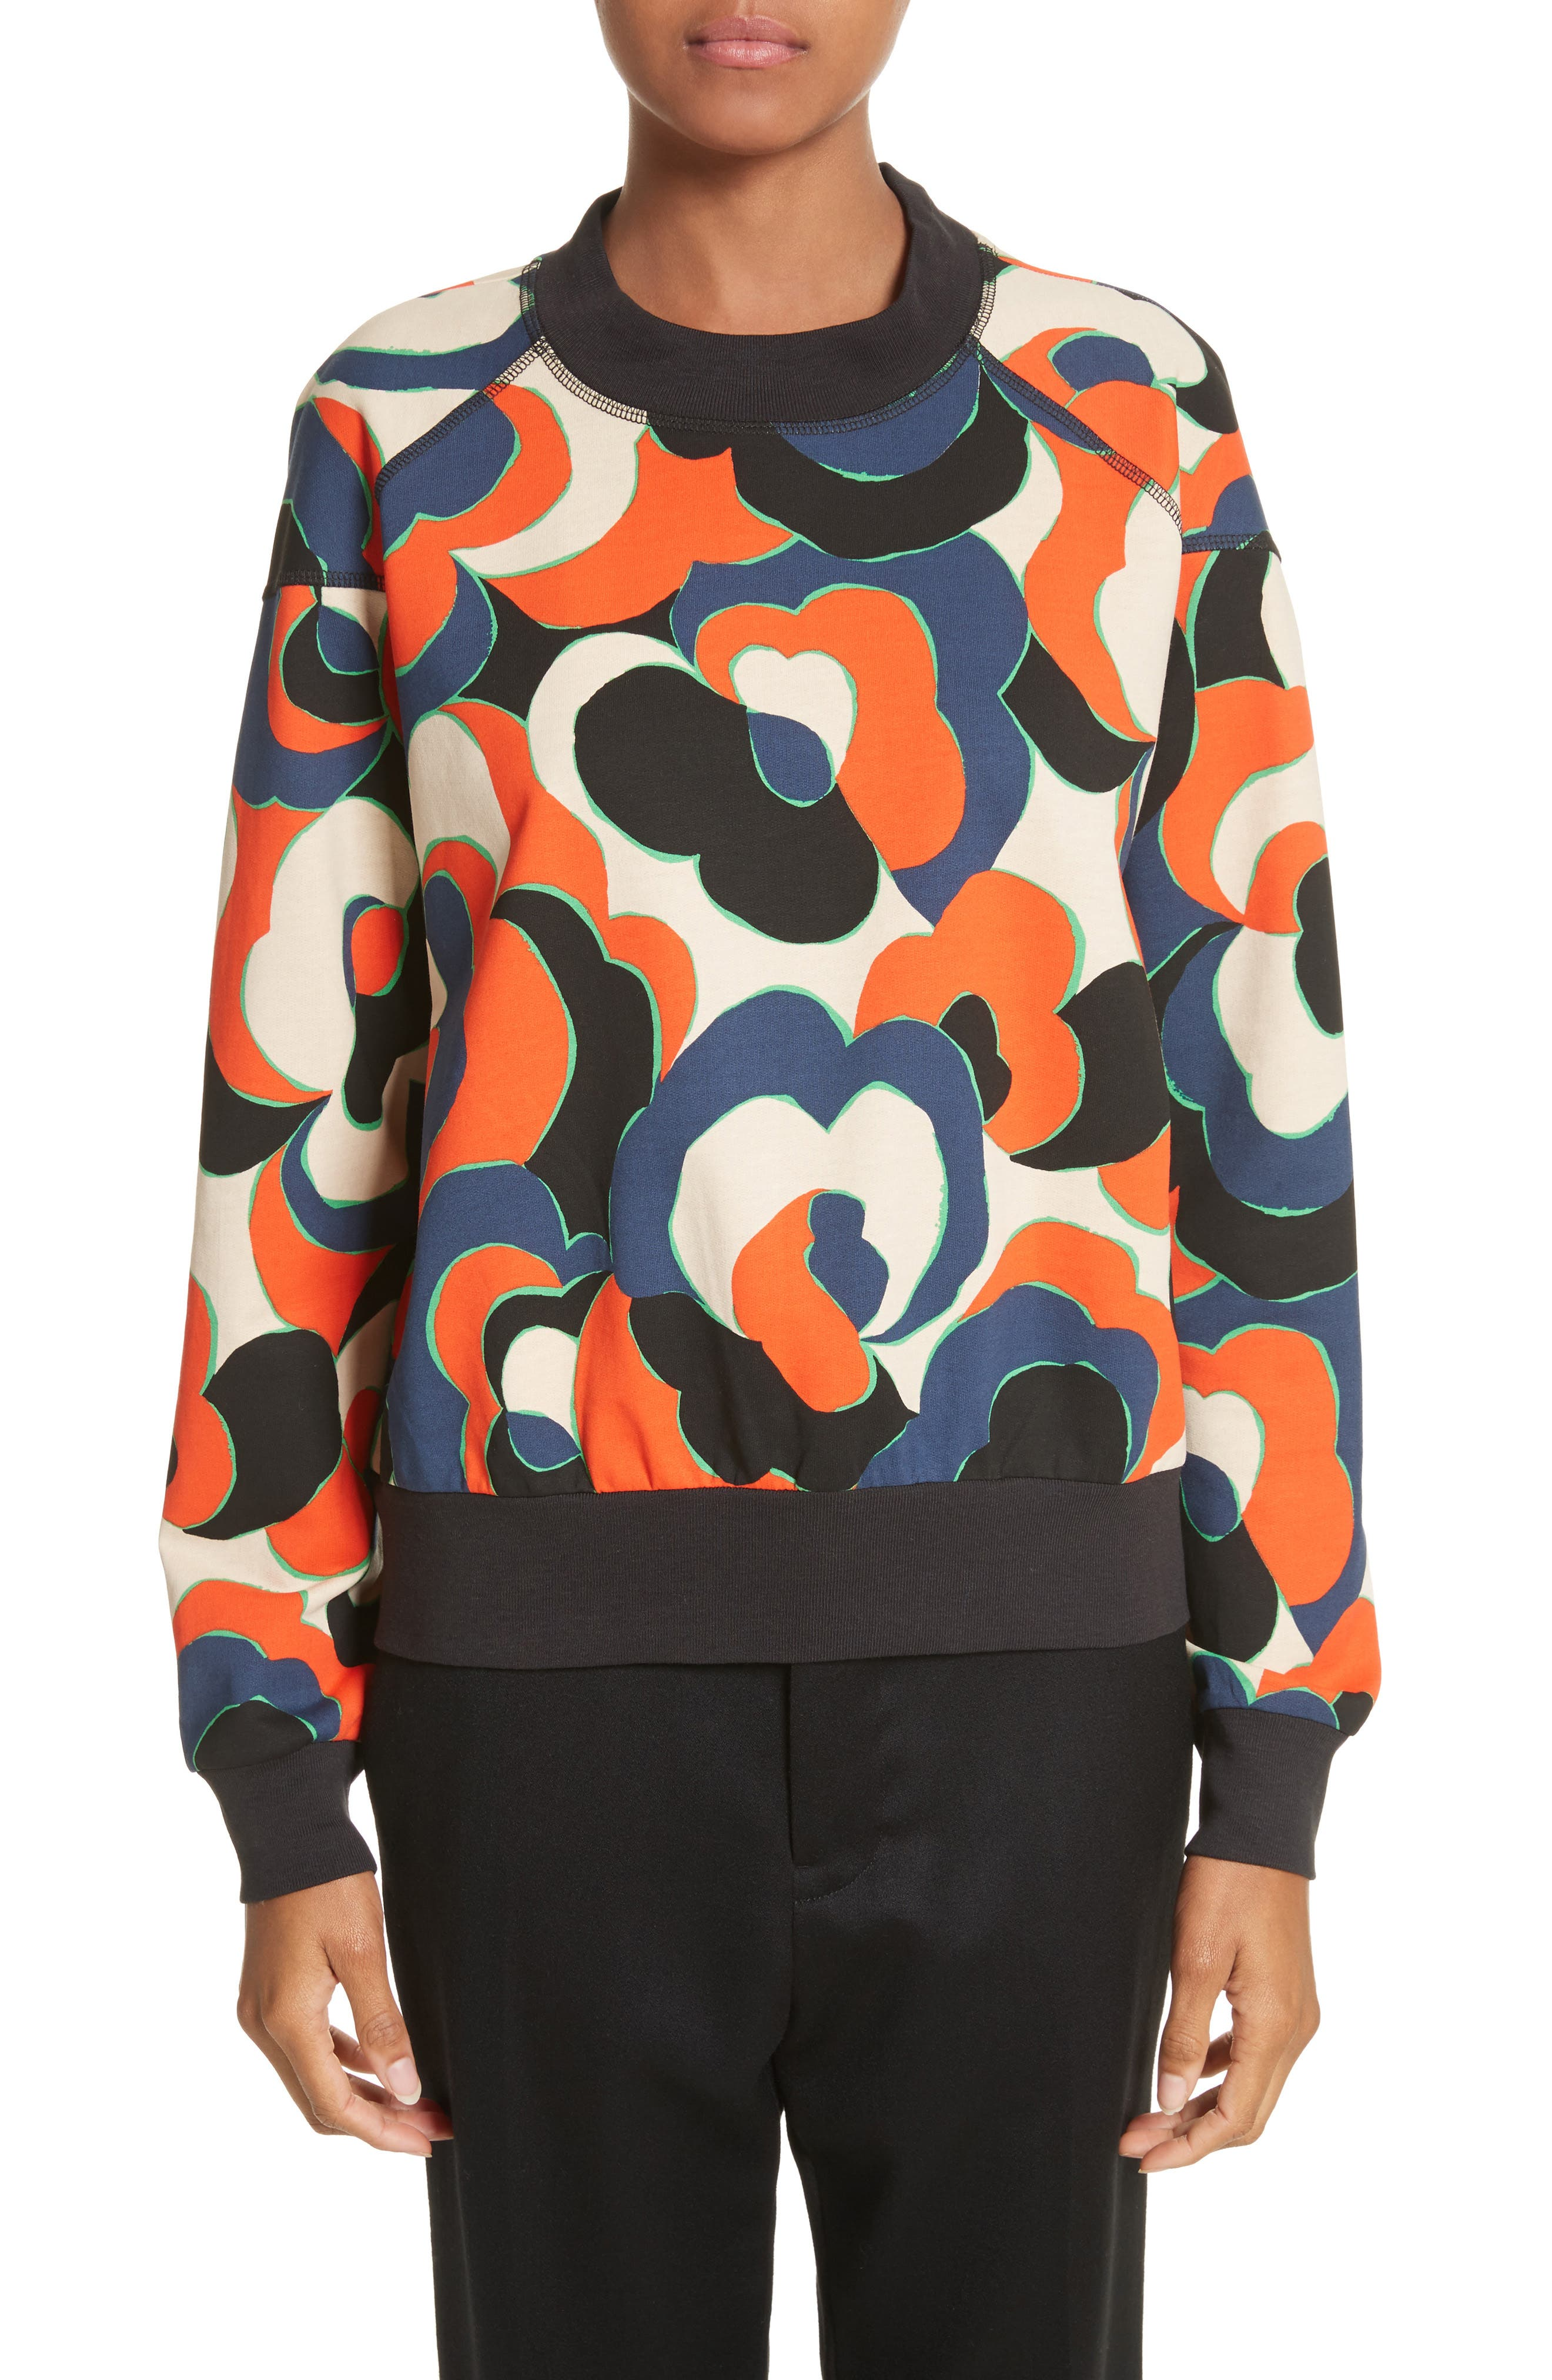 Hardmon Print Sweatshirt,                             Main thumbnail 1, color,                             600